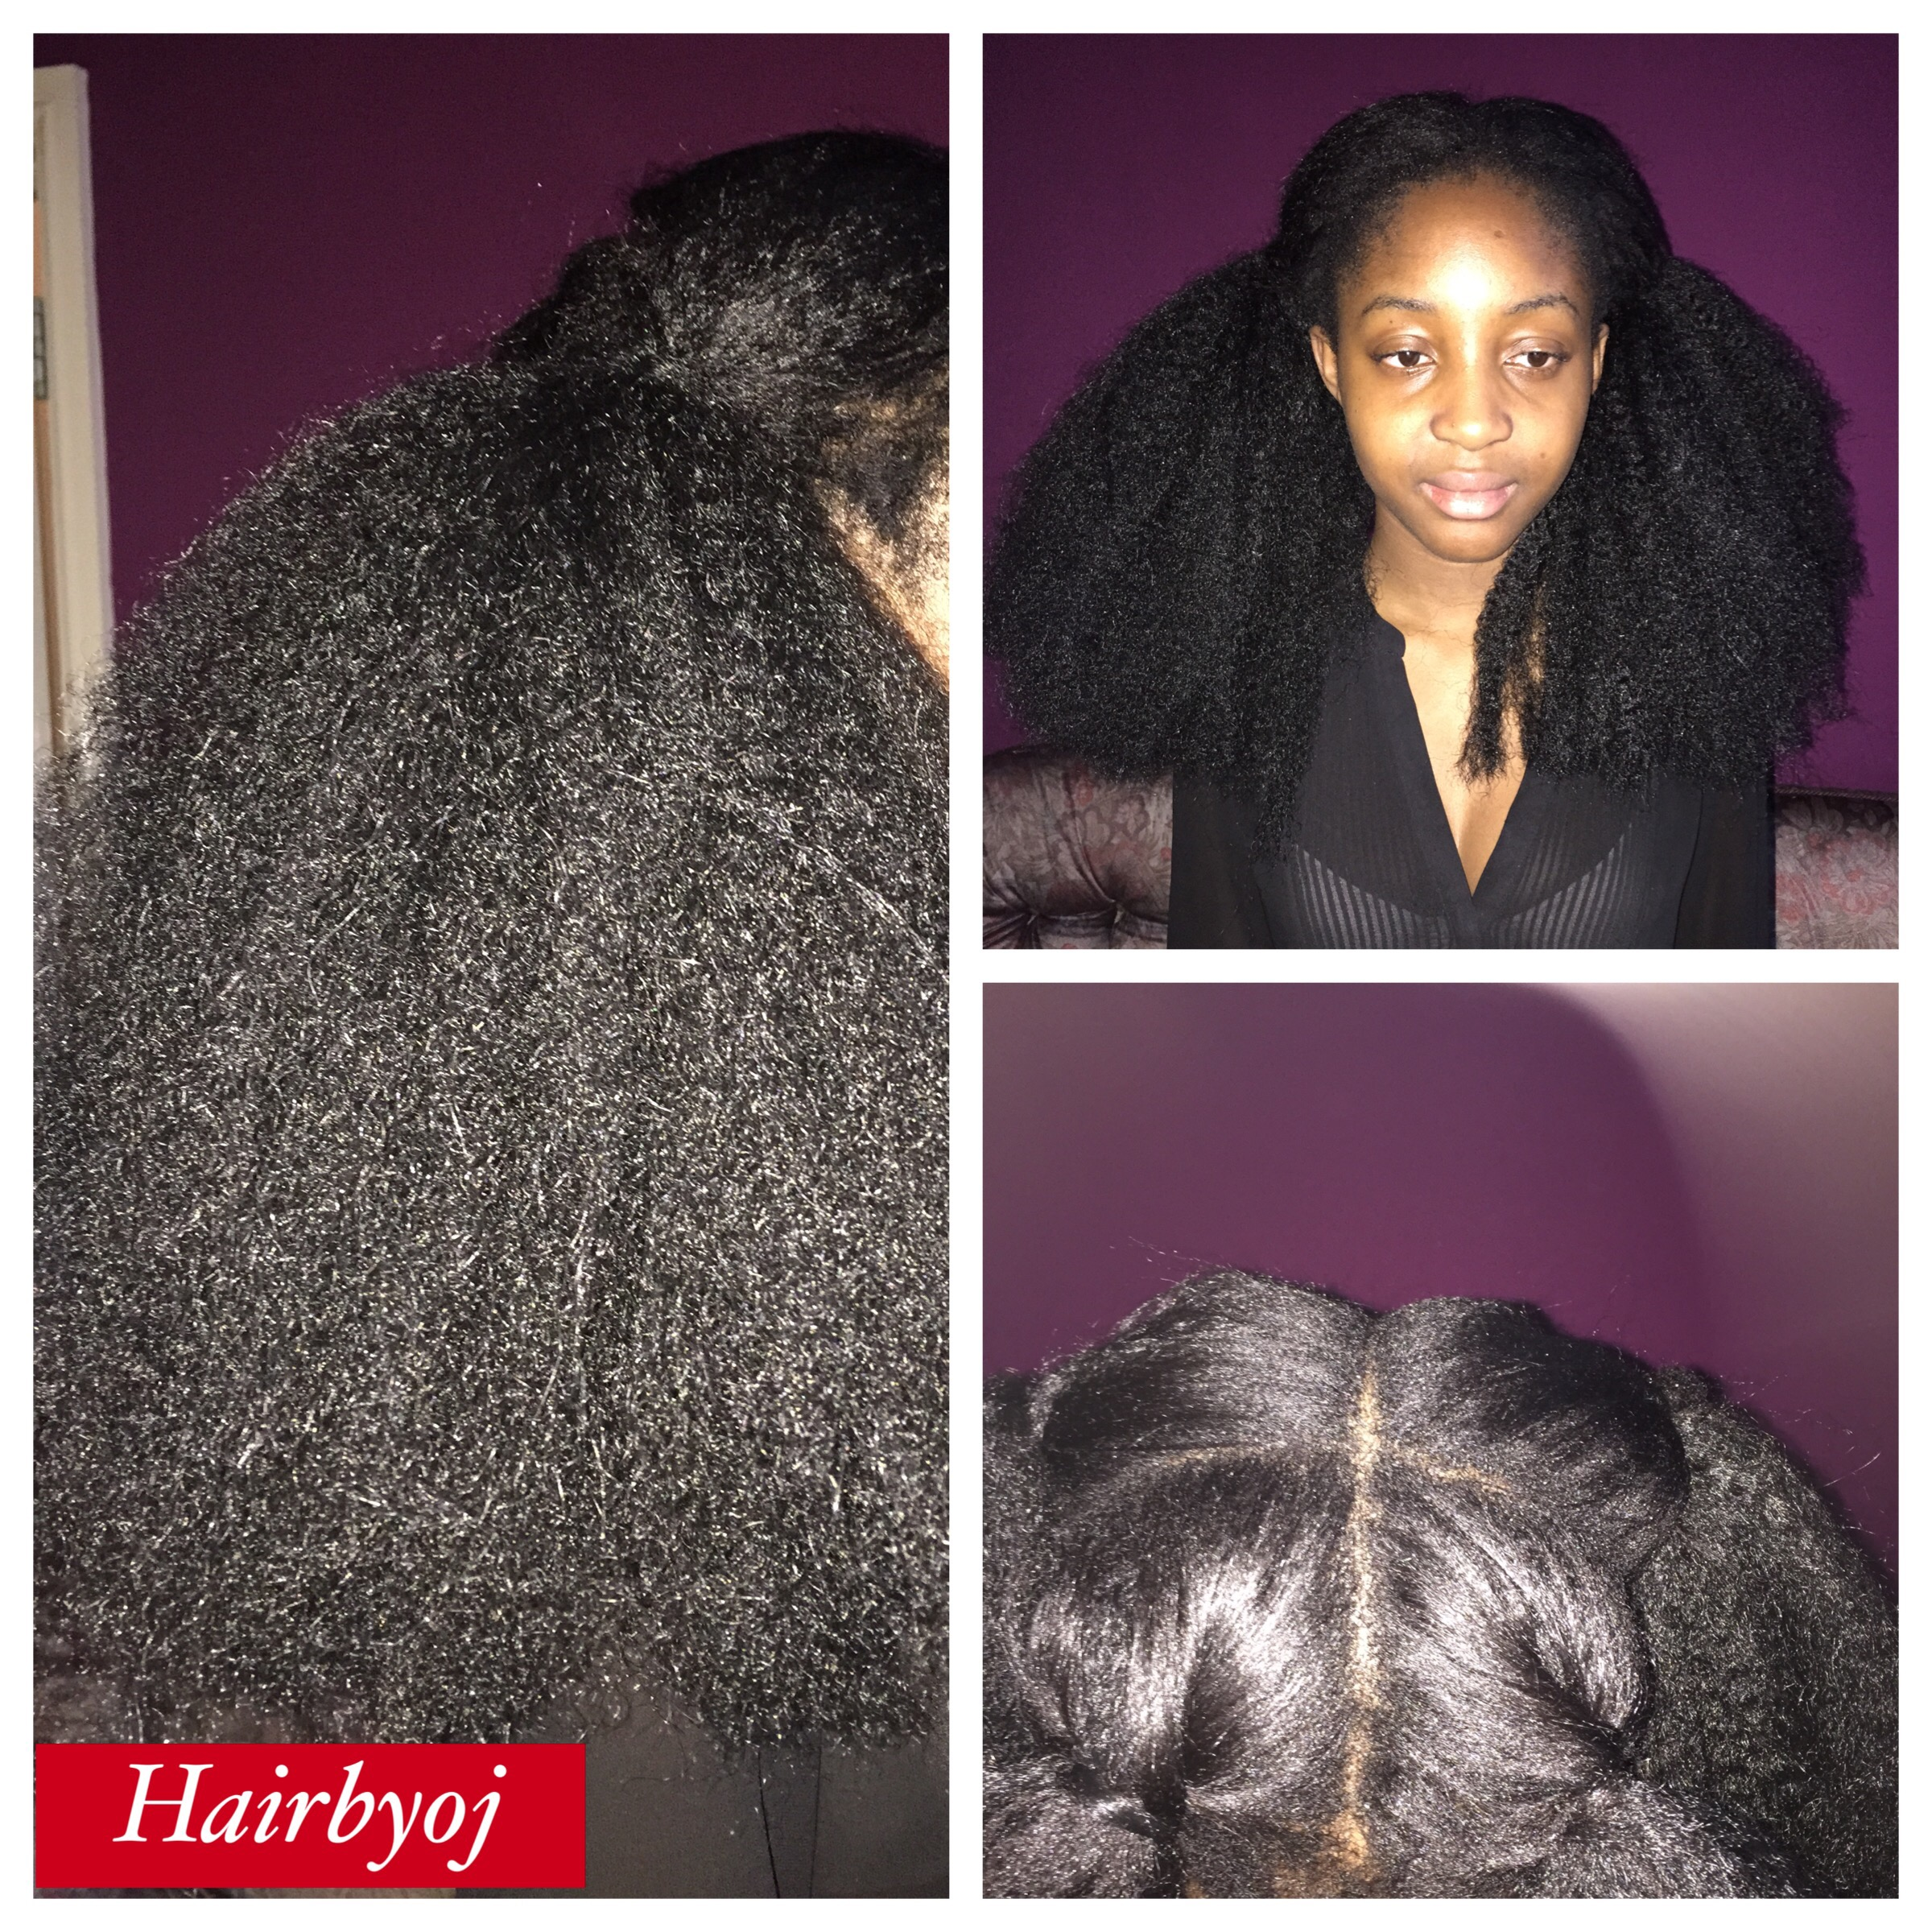 Crochet Marley Hair Vixen : Chest length knotless vixen crochet braids with Marley hair and leave ...